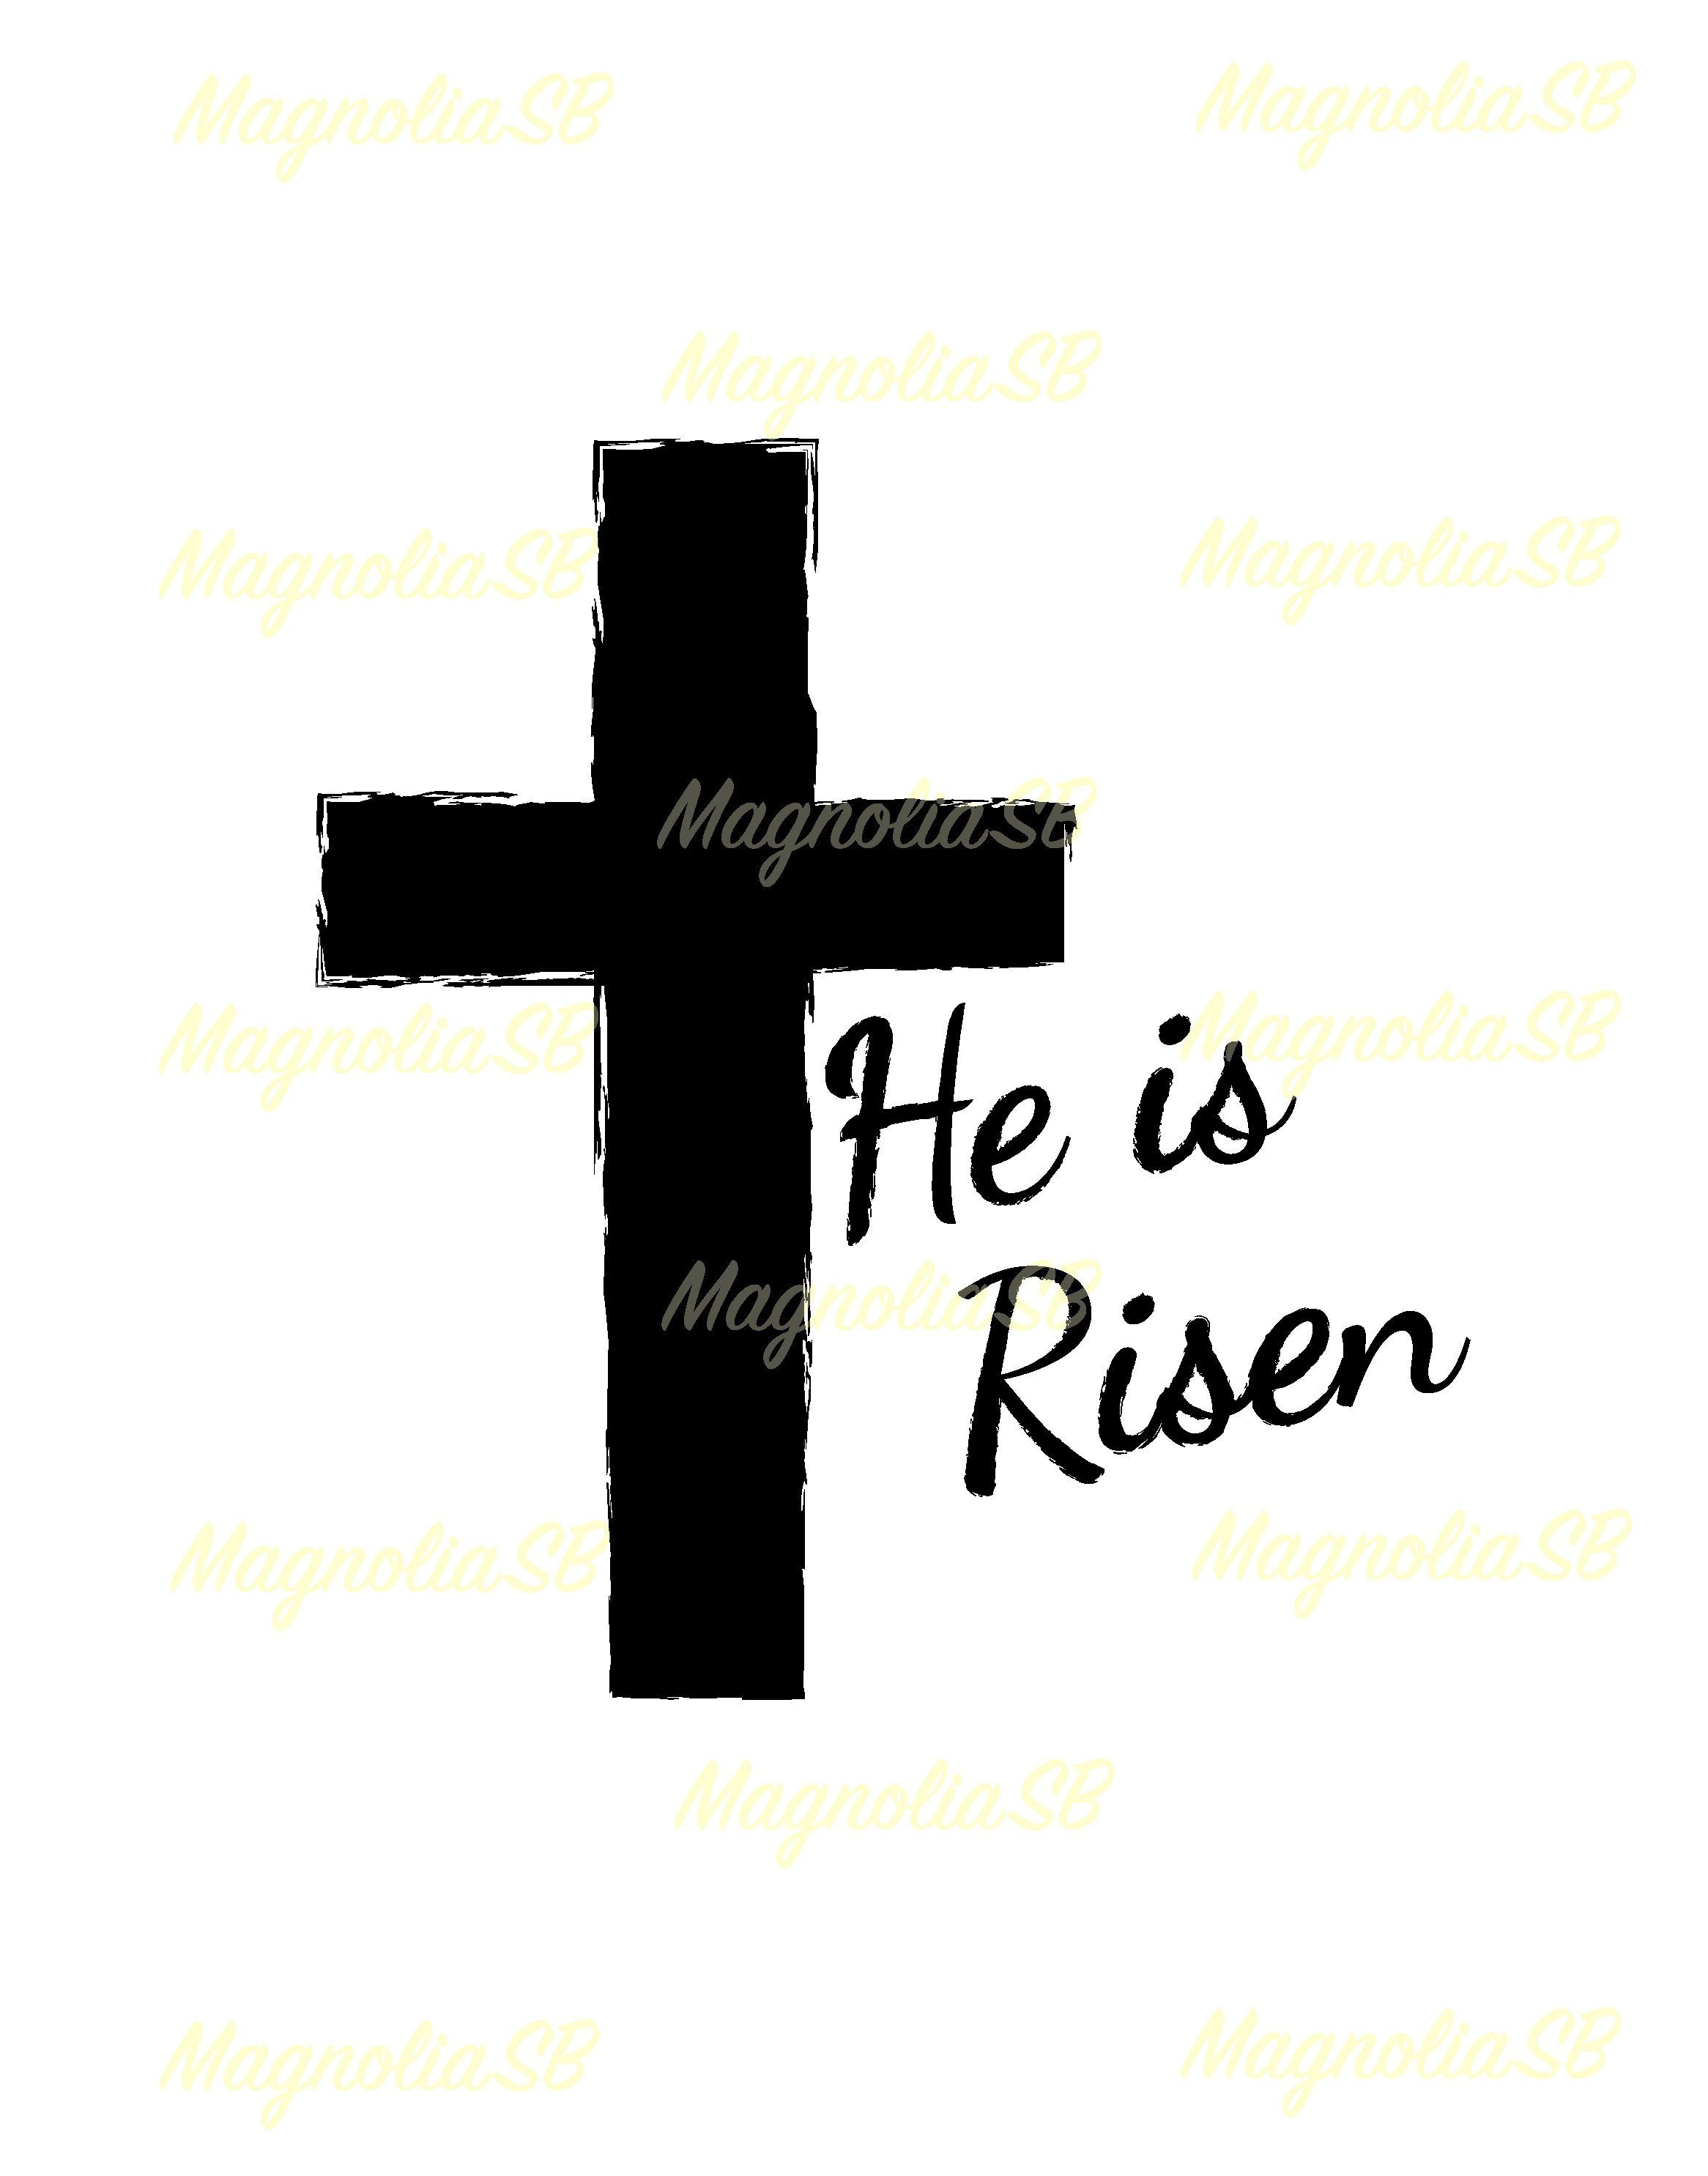 hight resolution of he is risen svg he is risen dxf he is risen clipart cutting easter he is risen vector he is risen shape he is risen silhouette